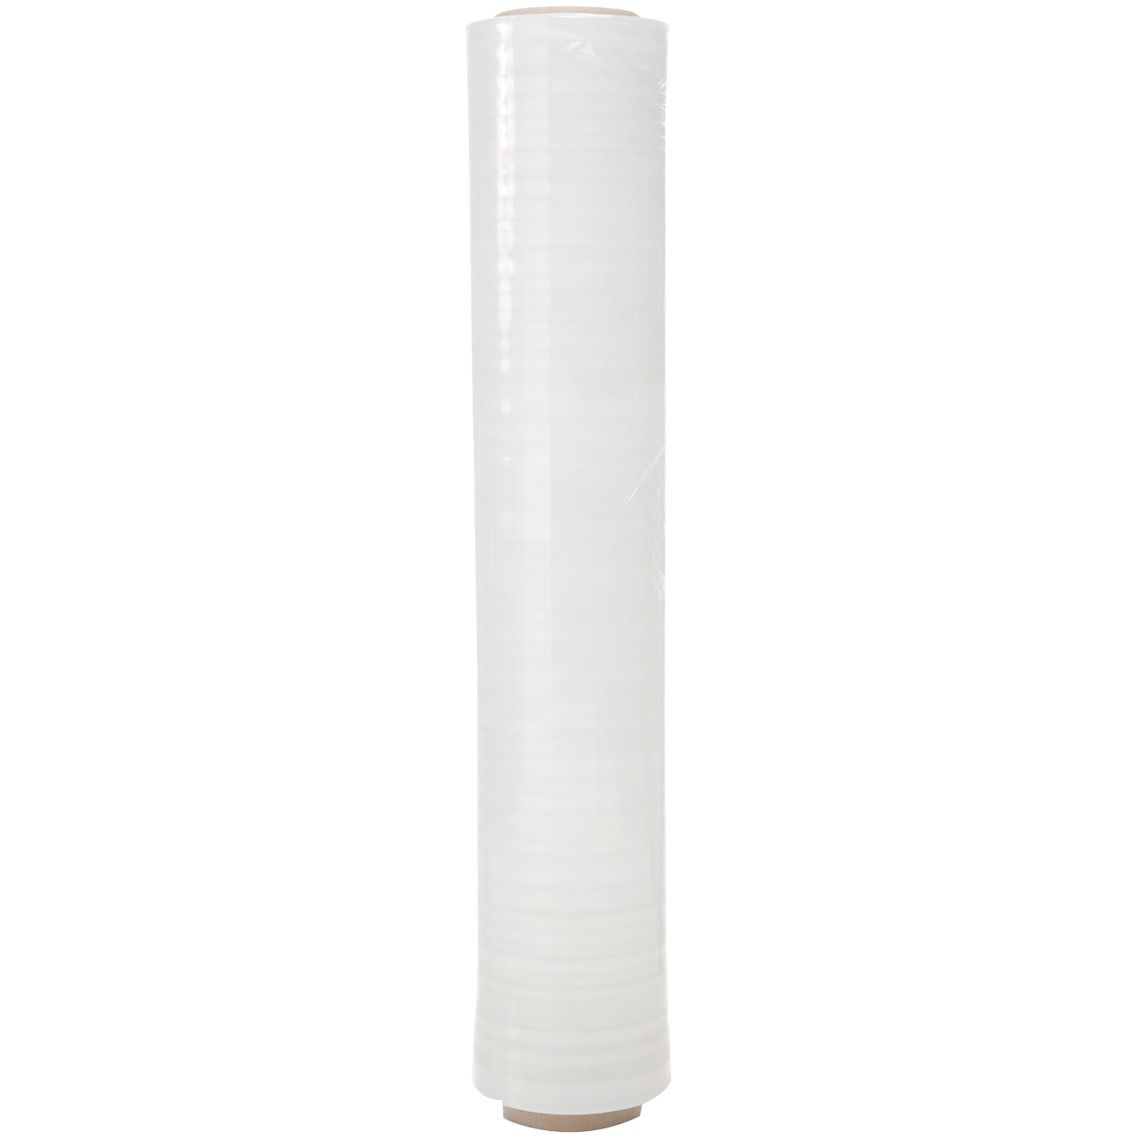 Hotpack Plastic Stretch Wrap Film 12-micron - 1.8kg (box/6pcs)